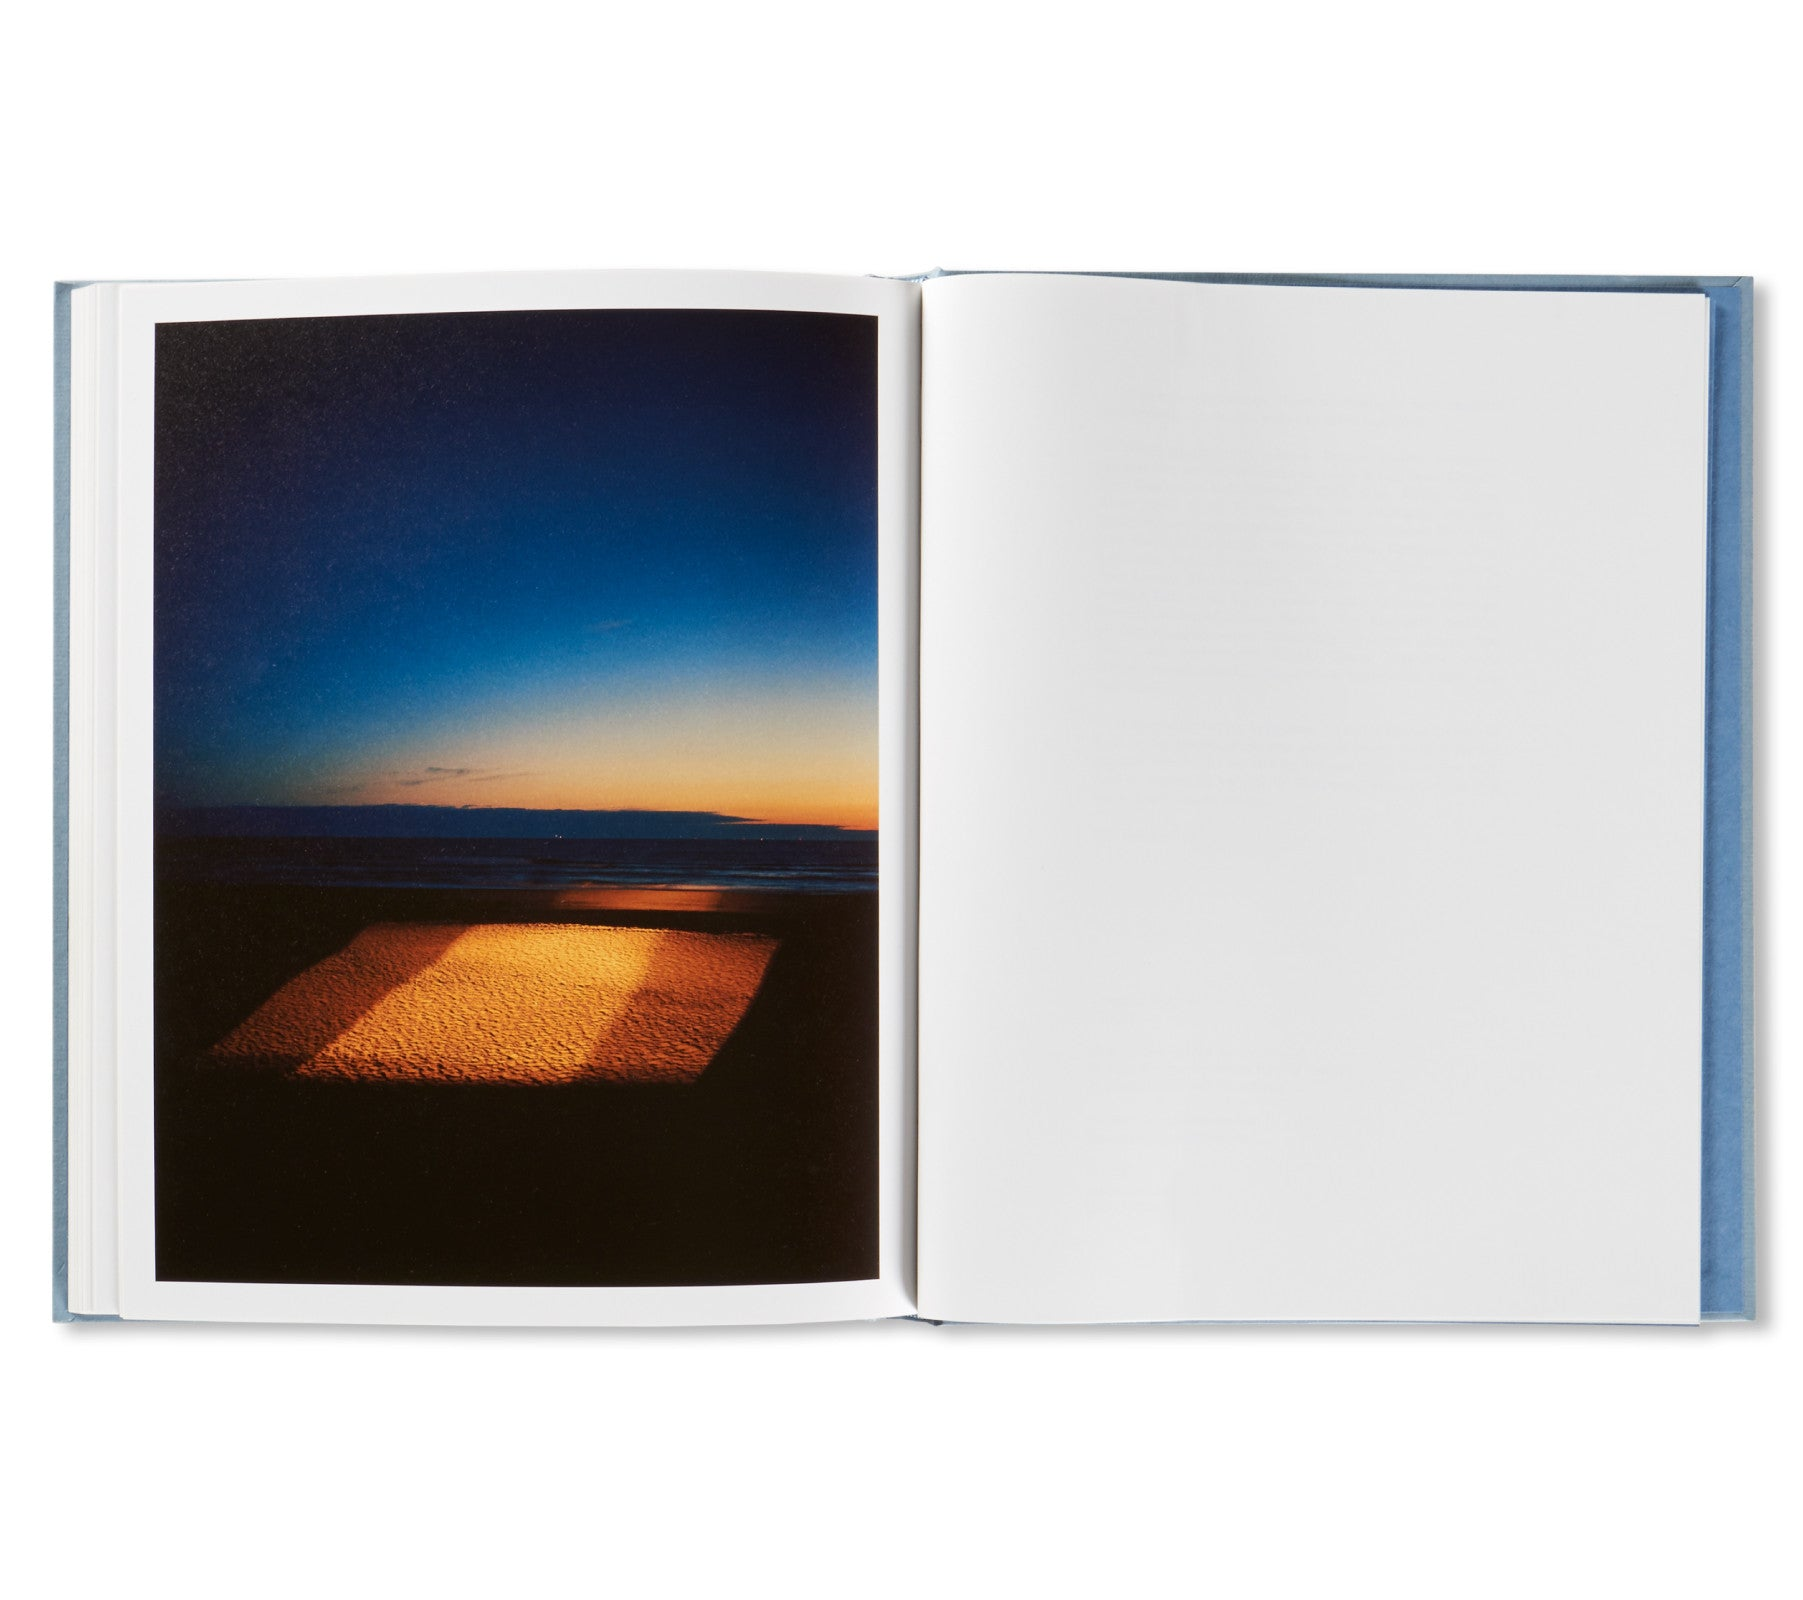 ZZYZX by Gregory Halpern [SPECIAL EDITION (TREE) / SIGNED]